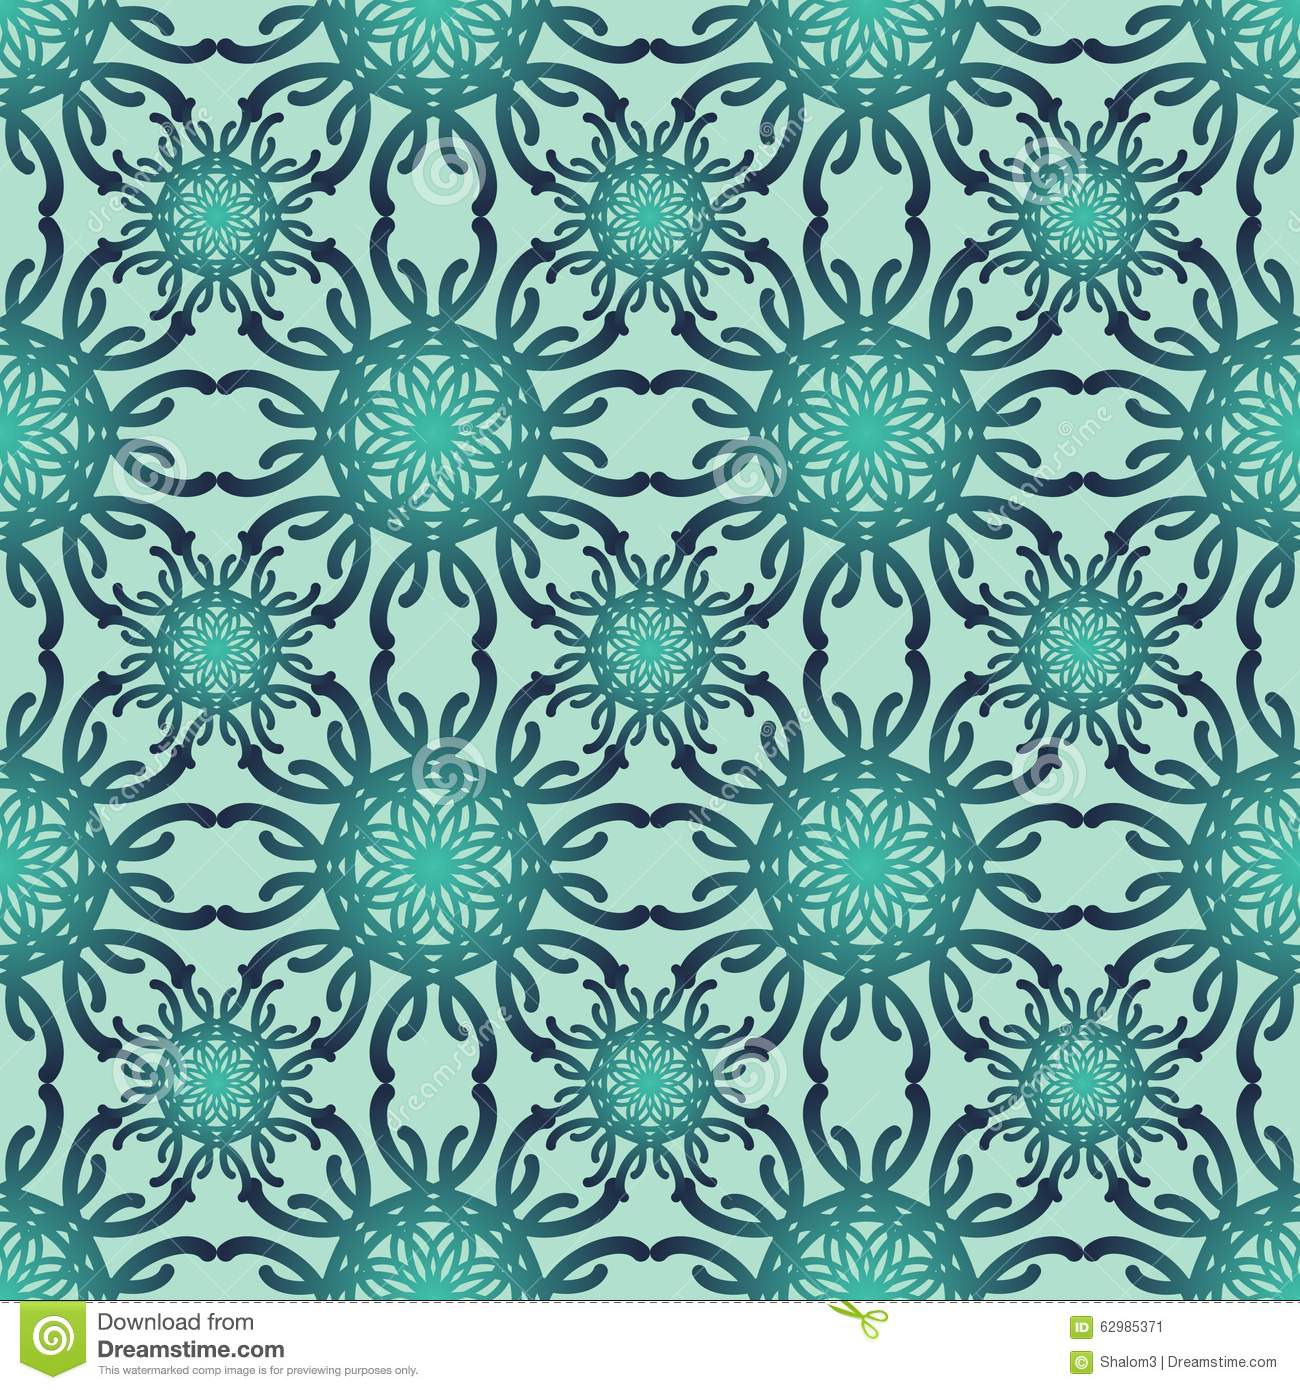 classic geometry art deco patterns in trendy green color art deco design patterns vector art deco floral pattern vector